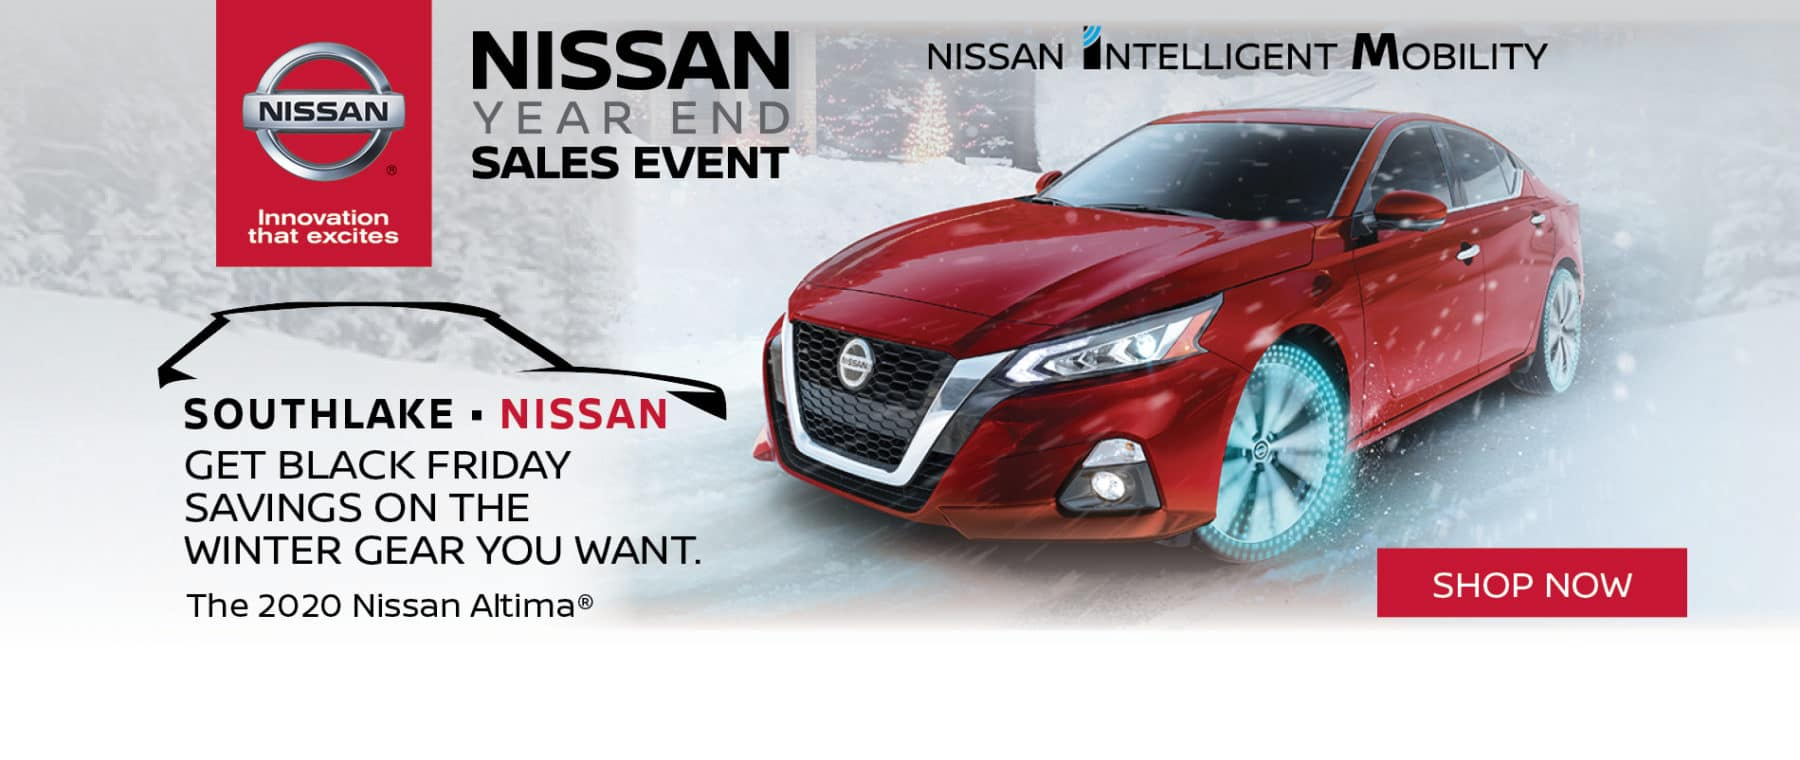 Nissan Year End Sales